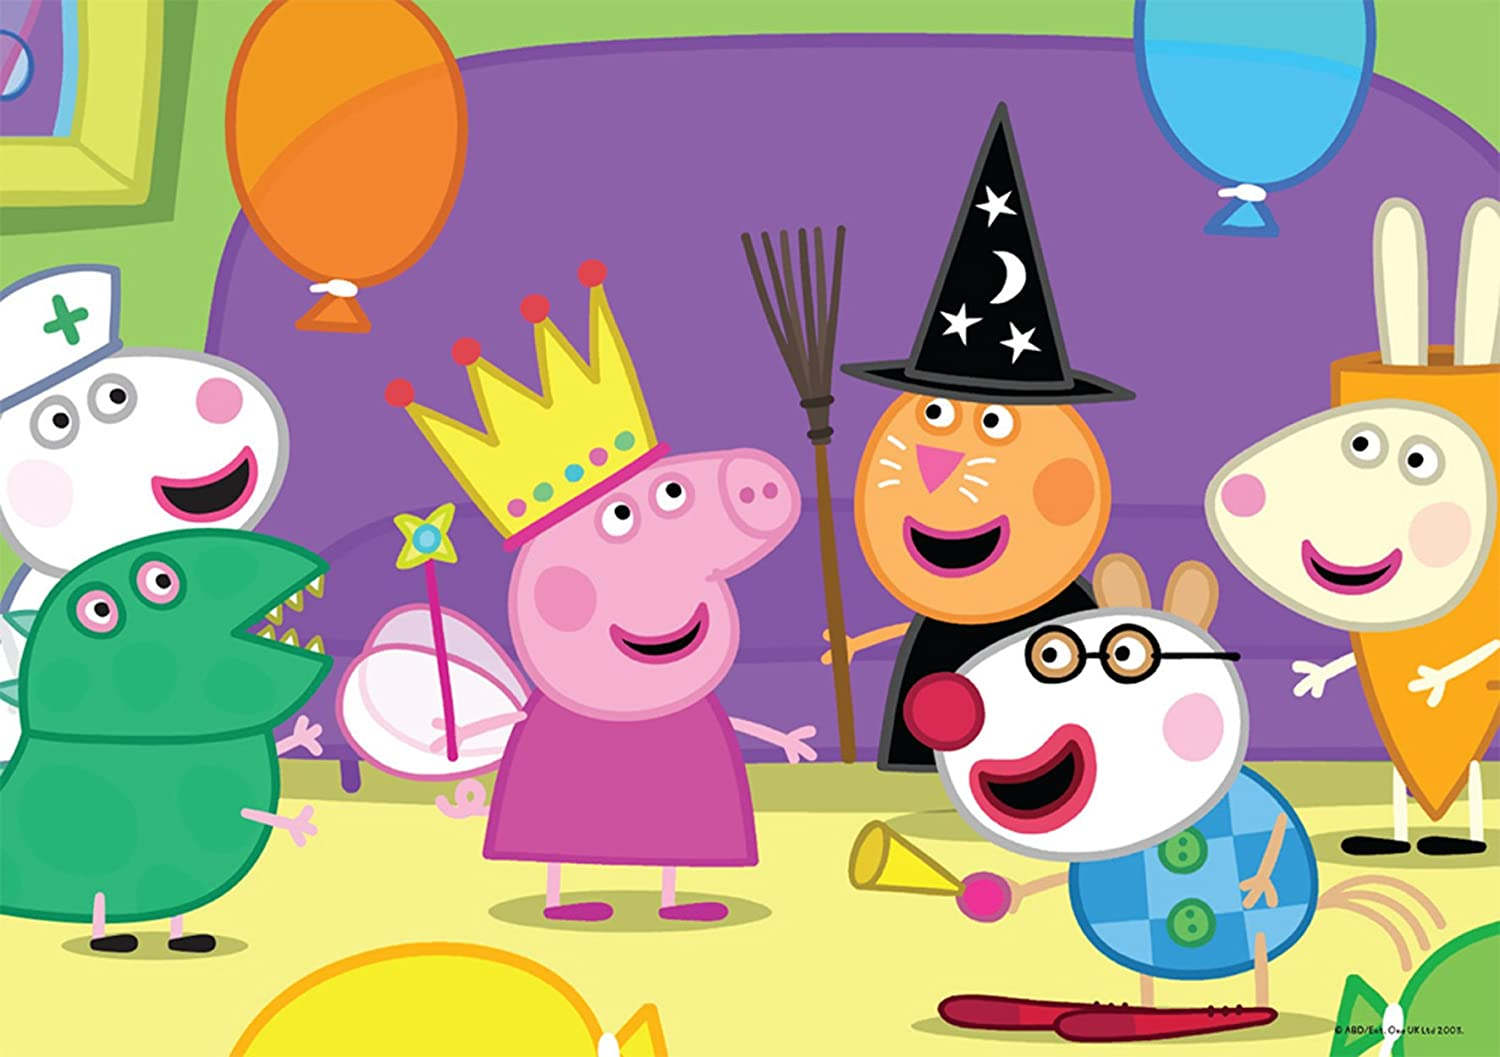 Are your children being tricked on YouTube into watching disturbing videos  - when they think they're watching Peppa Pig?